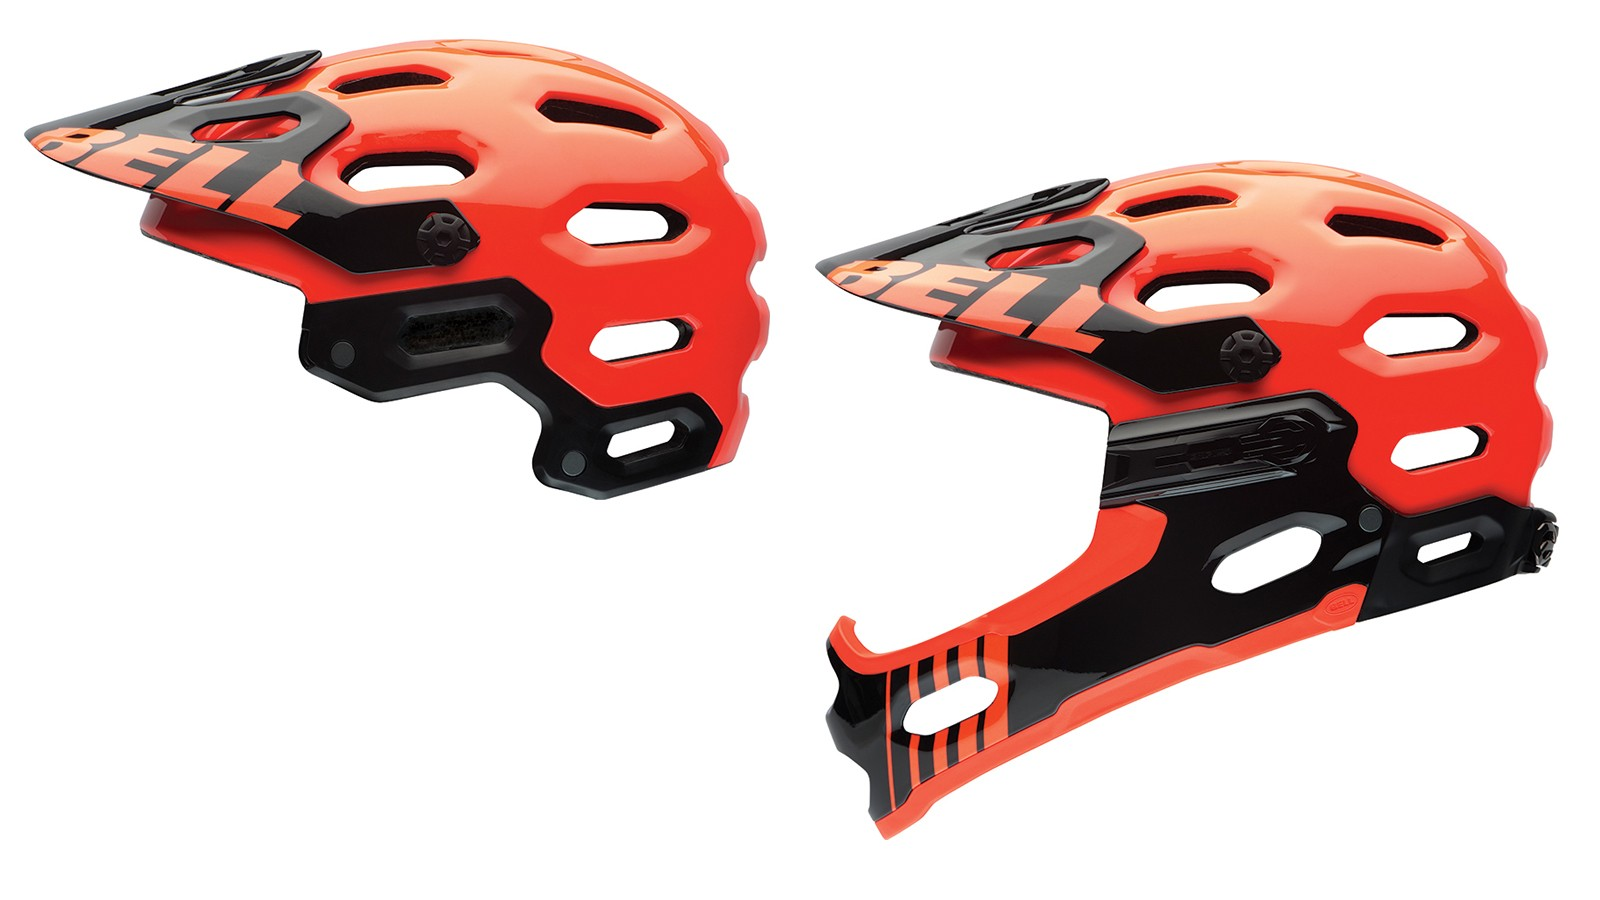 The Bell Super 2R is effectively two helmets in one